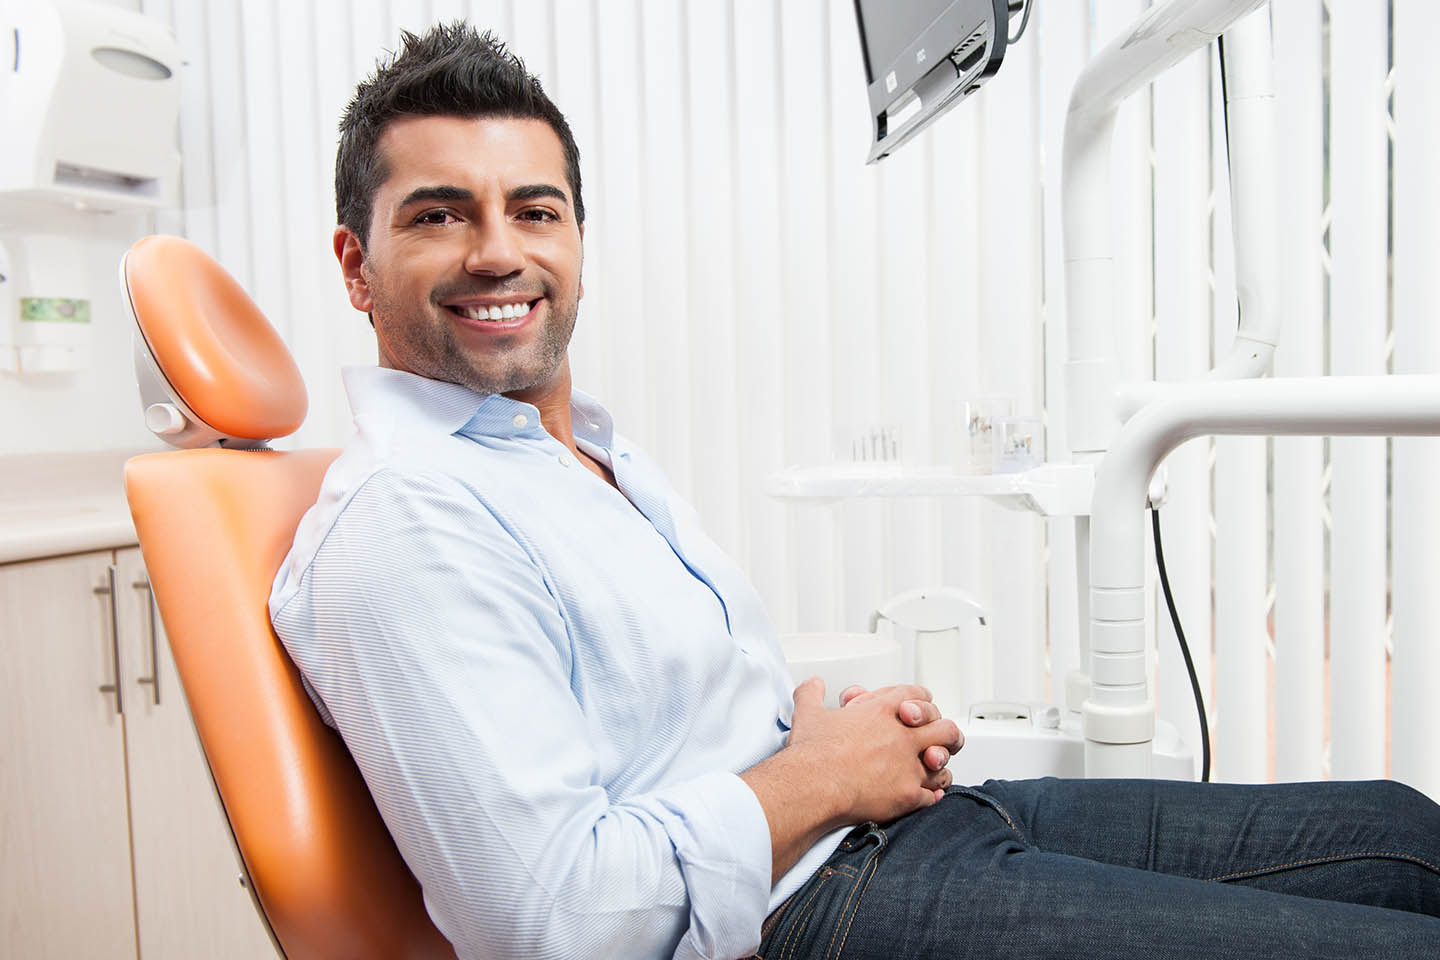 Man smiling in examination chair